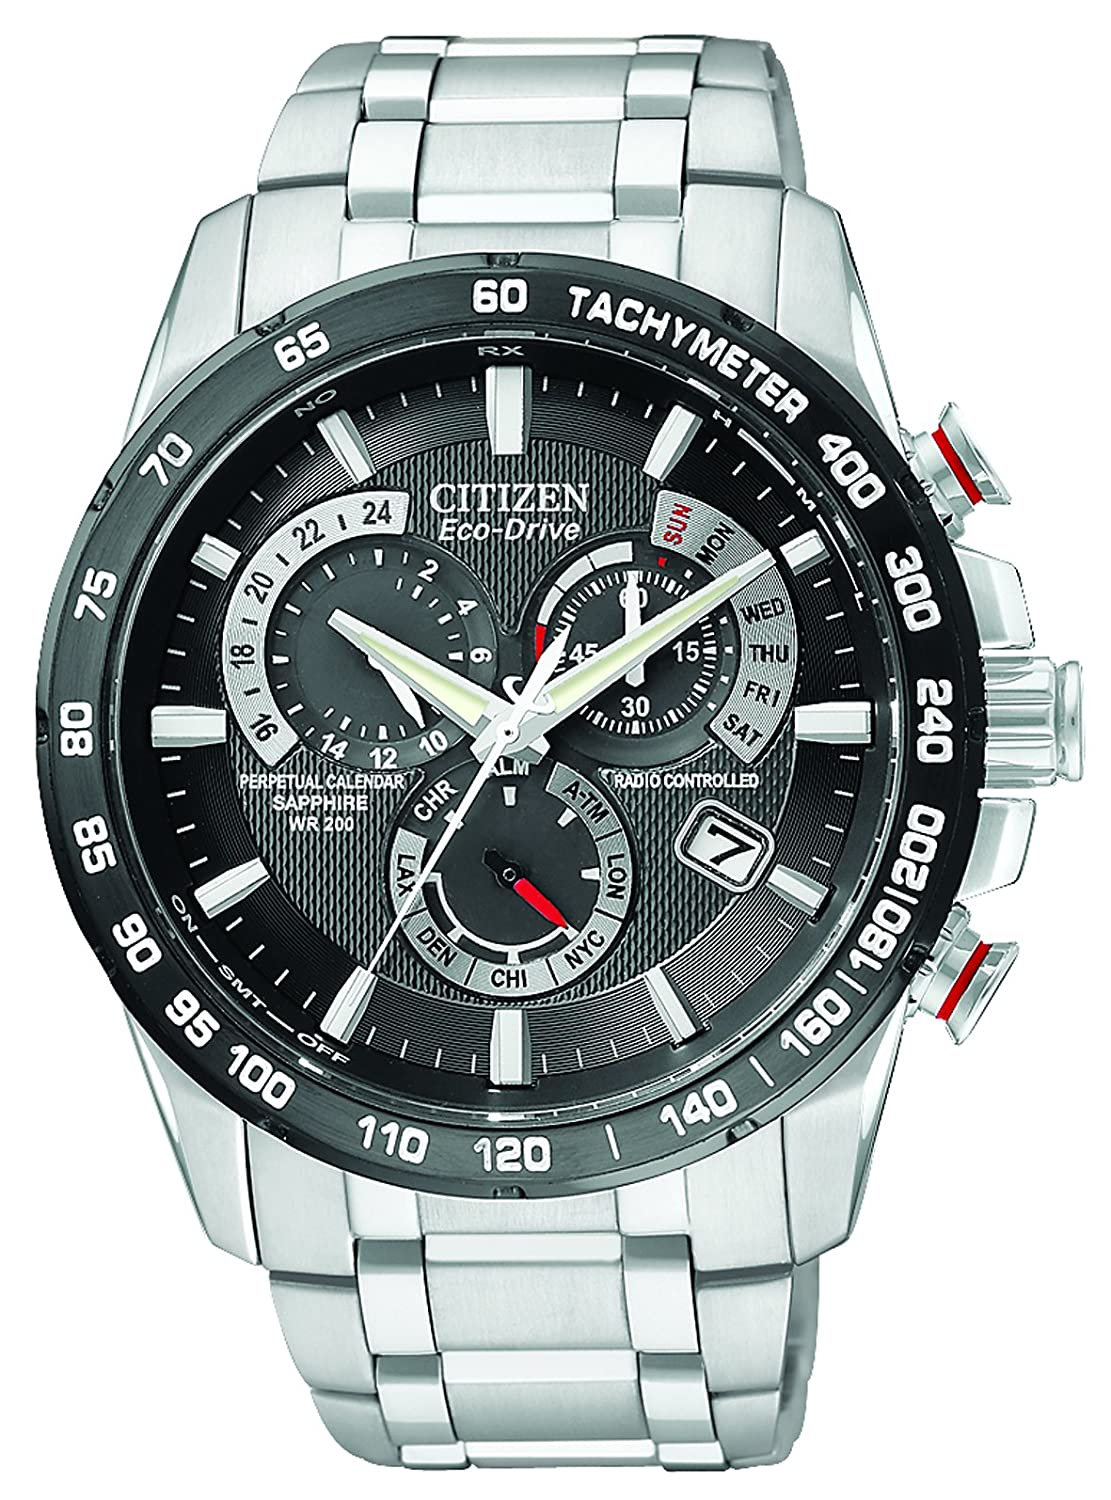 Citizen Men's Eco-Drive Chronograph Watch with Black Dial and Stainless  Steel Bracelet AT4008-51E: Amazon.co.uk: Watches